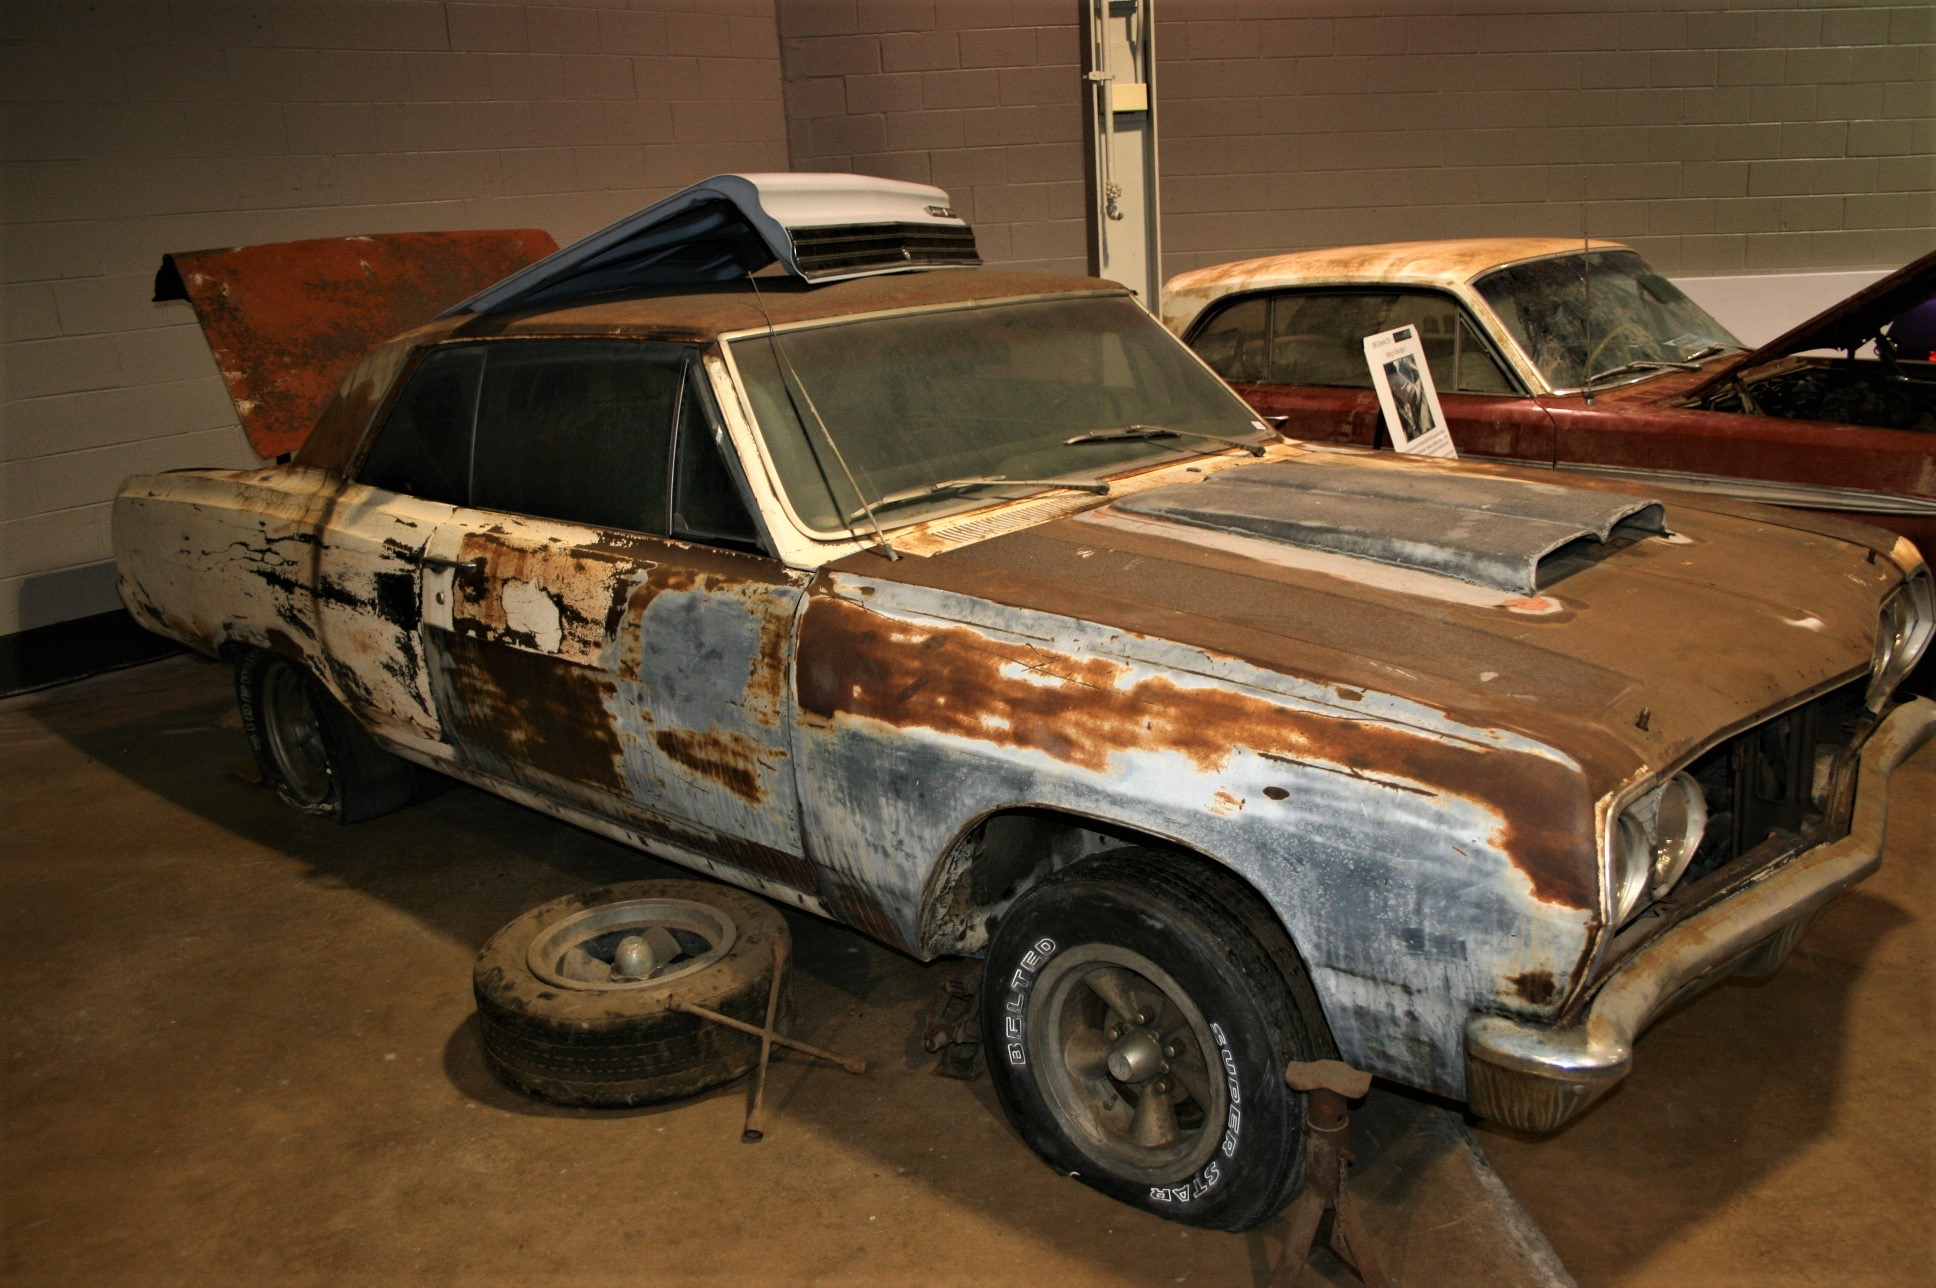 Deteriorating in a driveway for 40 years, rare Z16 Chevelle